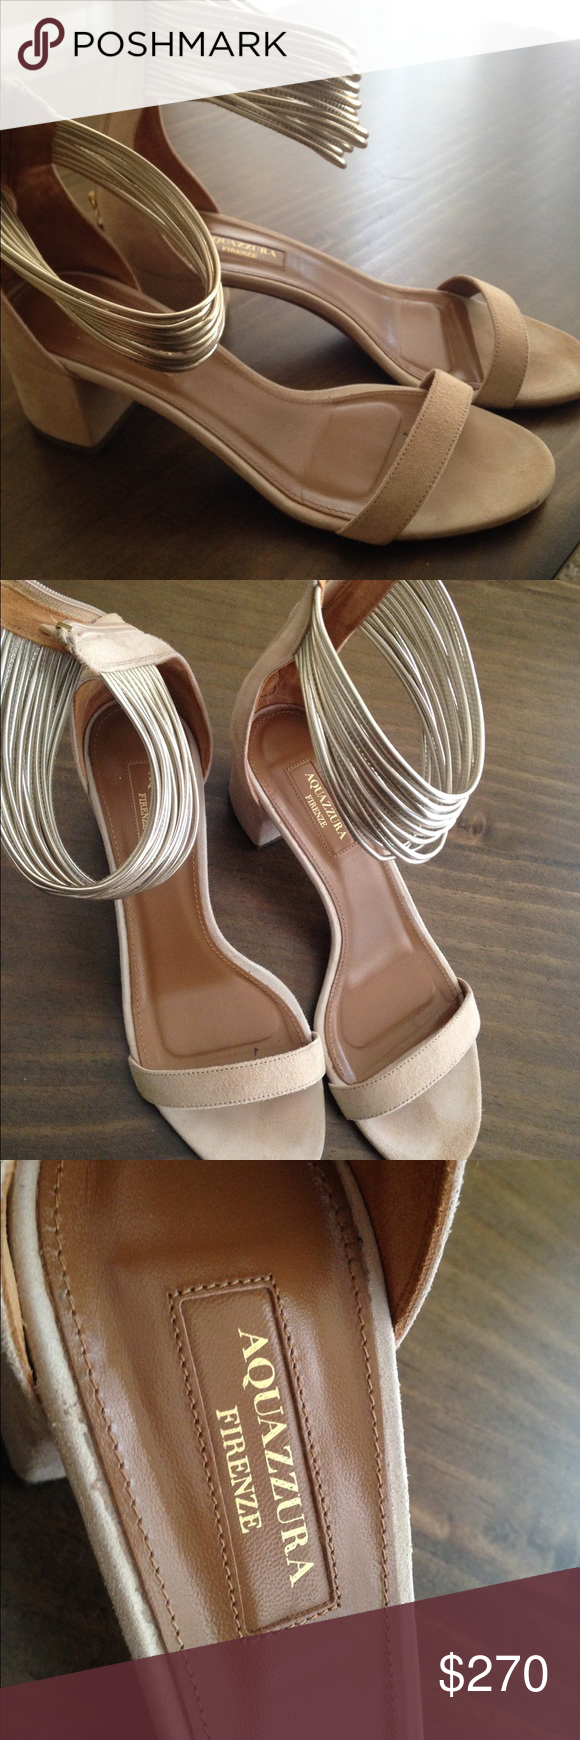 439bb8450 Aquazzura Firebze - Vero Cuoio sandal heels - the price is lowered because  the soles are kinda worn but other than that the heels are in good  condition ...